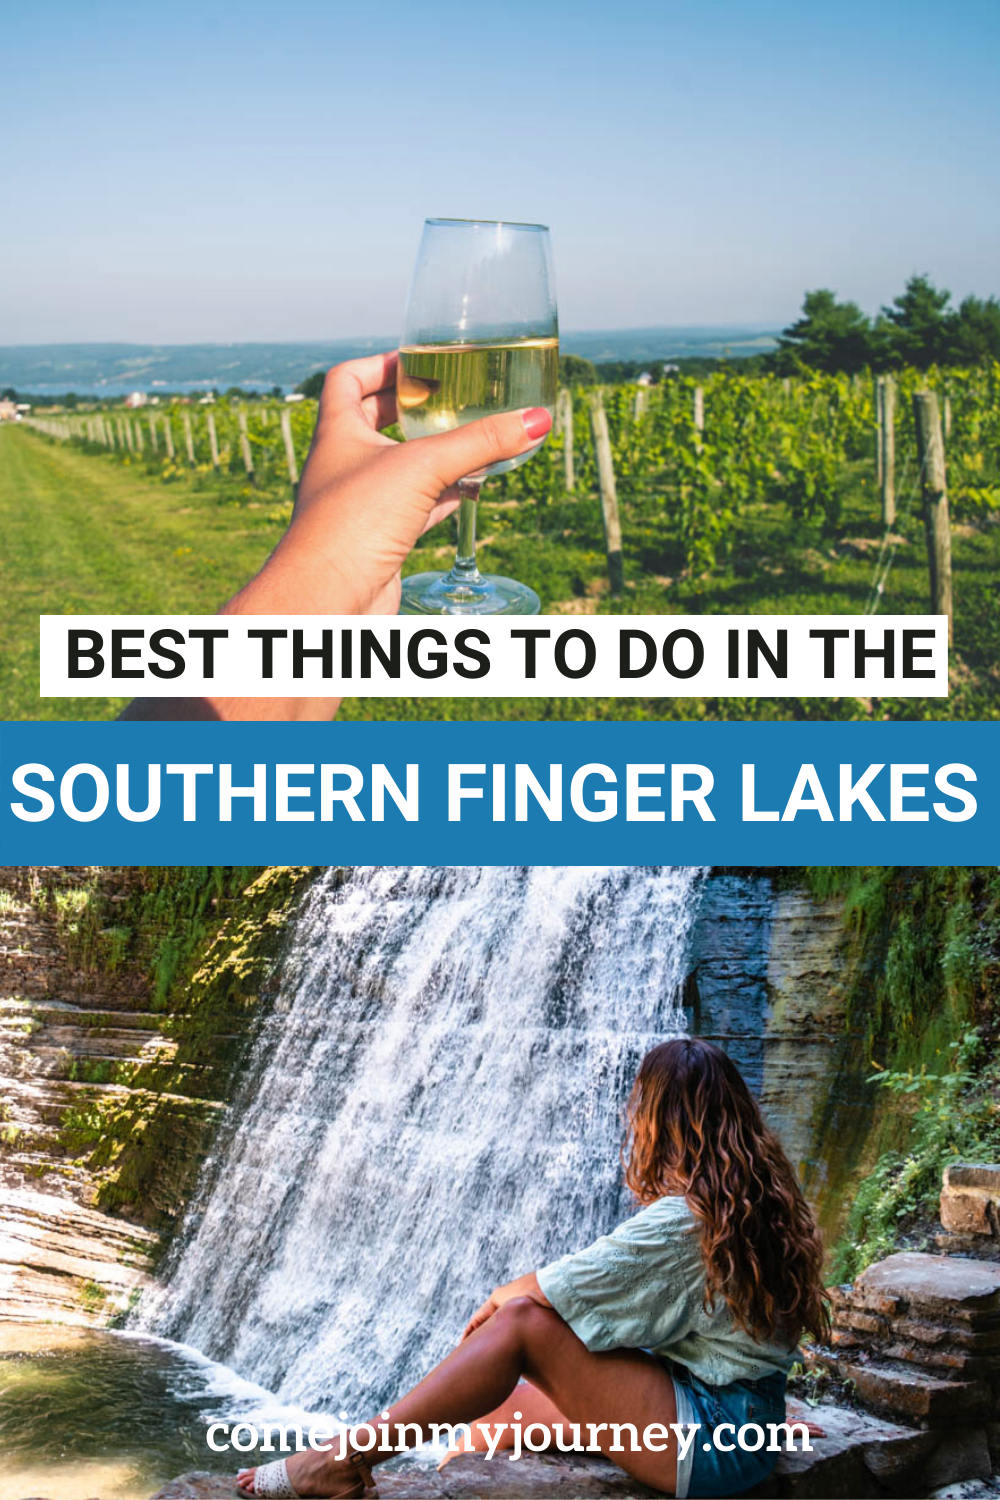 Things to do in the Southern Finger Lakes